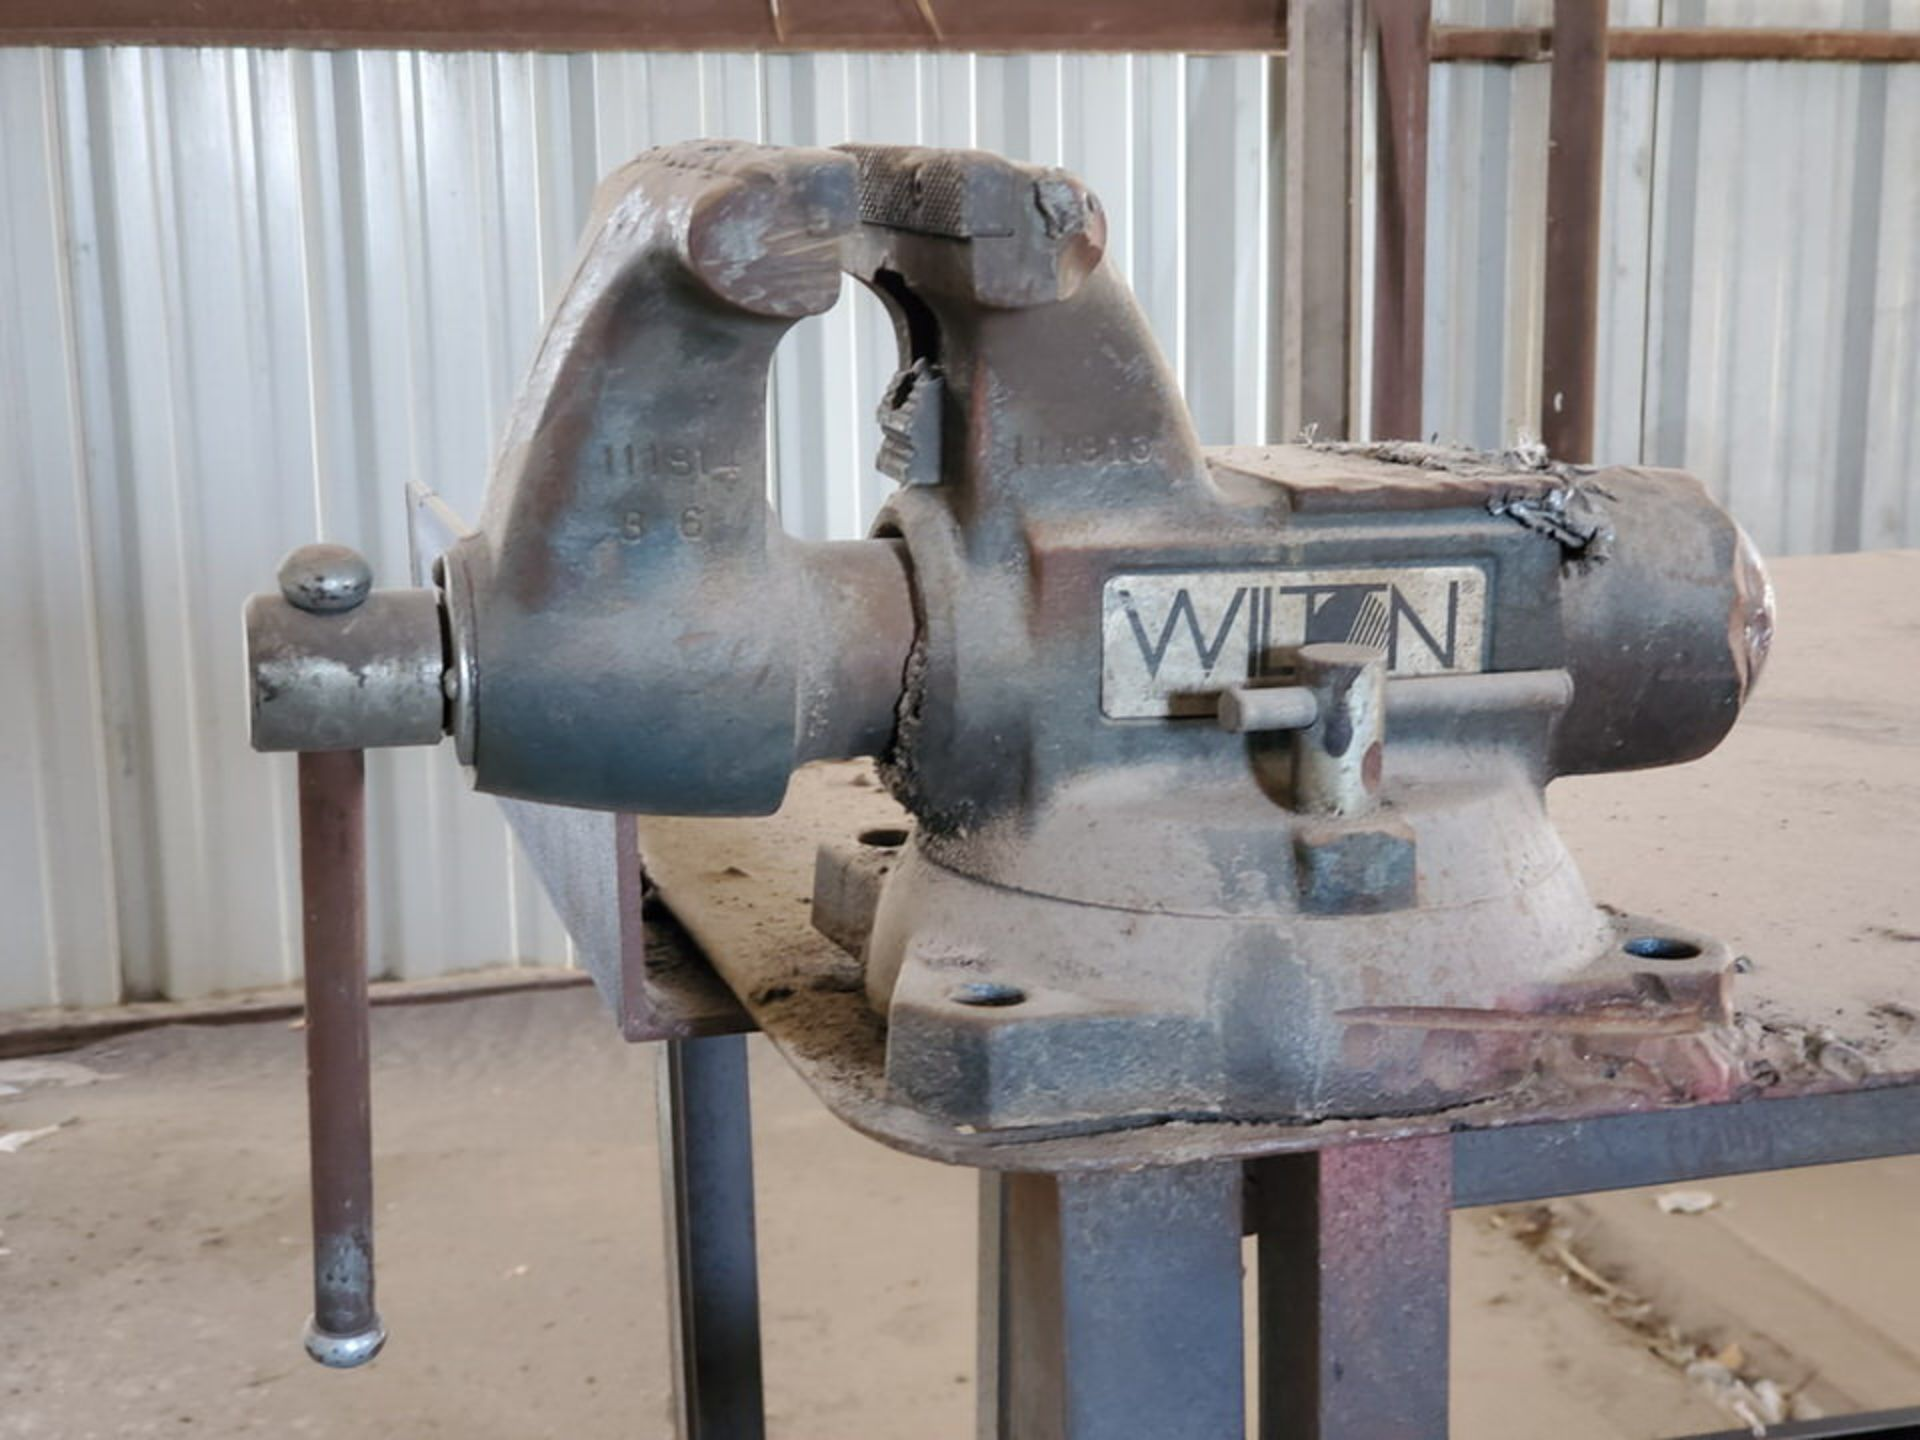 """Welding Tables (1) 37"""" x 65"""" x 36"""", W/ 5-1/2"""" Vise, (1) 72"""" x 64"""" x 38"""" - Image 7 of 8"""